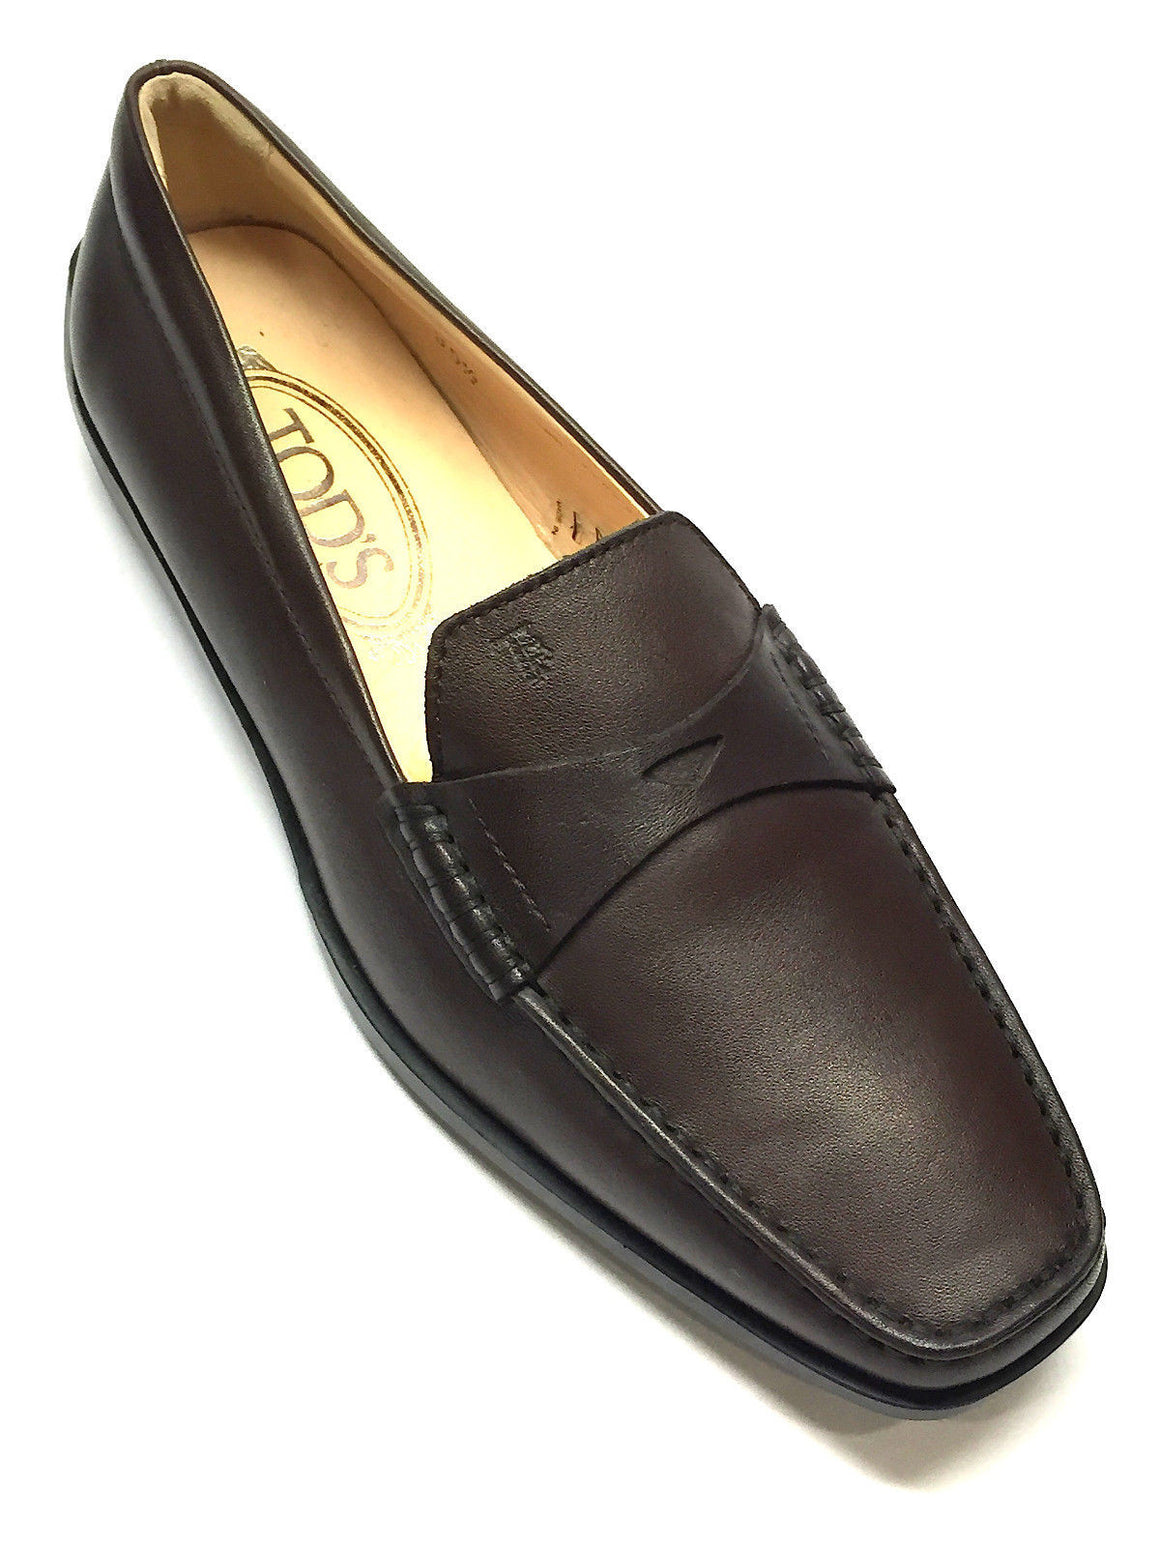 bisbiz.com Tod's  New  Gommino Brown Leather Black Rubber Soles  Penny Driving Loafers Shoes  Size: 35.5/5.5 - Bis Luxury Resale